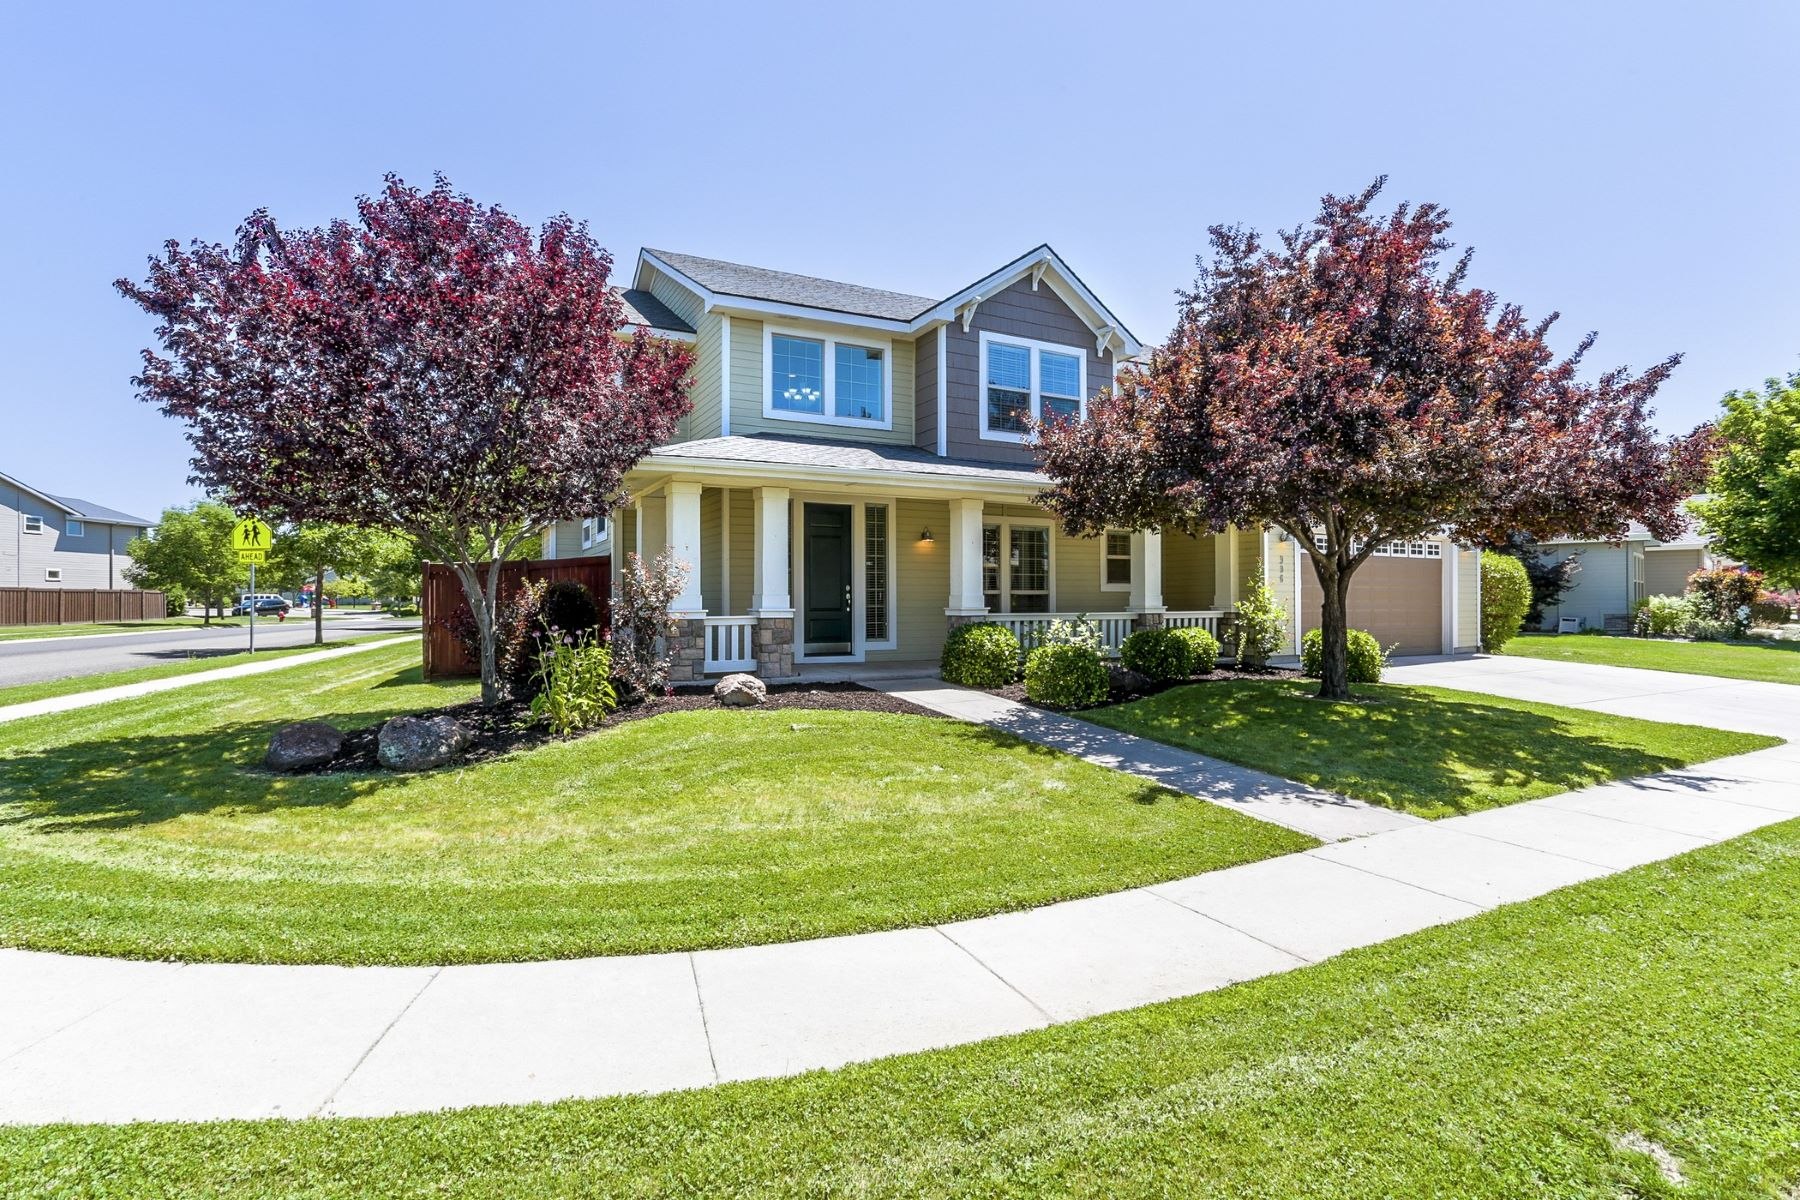 Single Family Homes for Sale at 996 Cagney Dr, Meridian 996 W Cagney Dr Meridian, Idaho 83646 United States